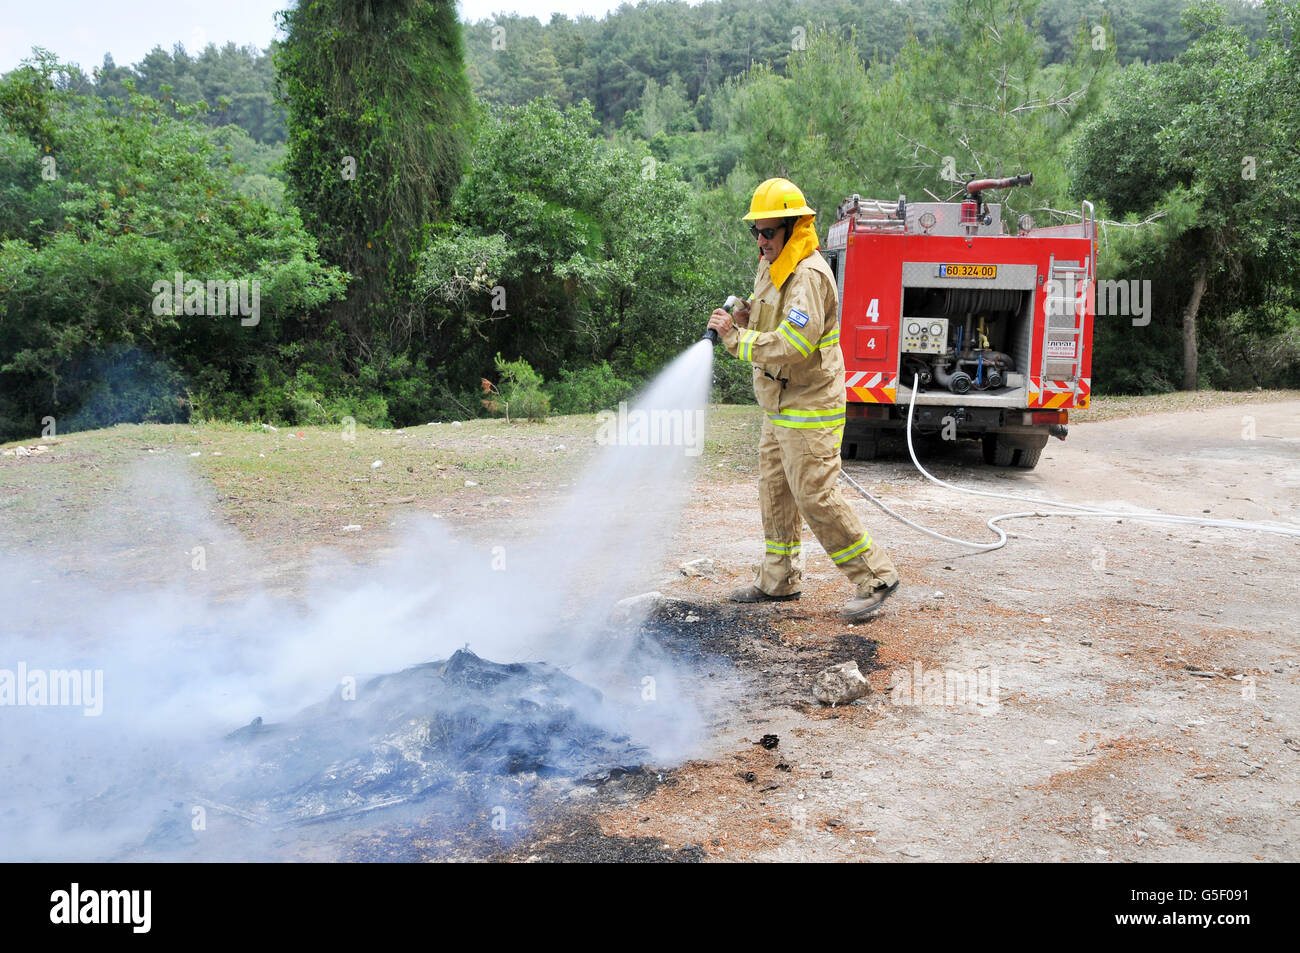 Fireman in protective clothing extinguishes a fire as part of a fire fighting drill - Stock Image